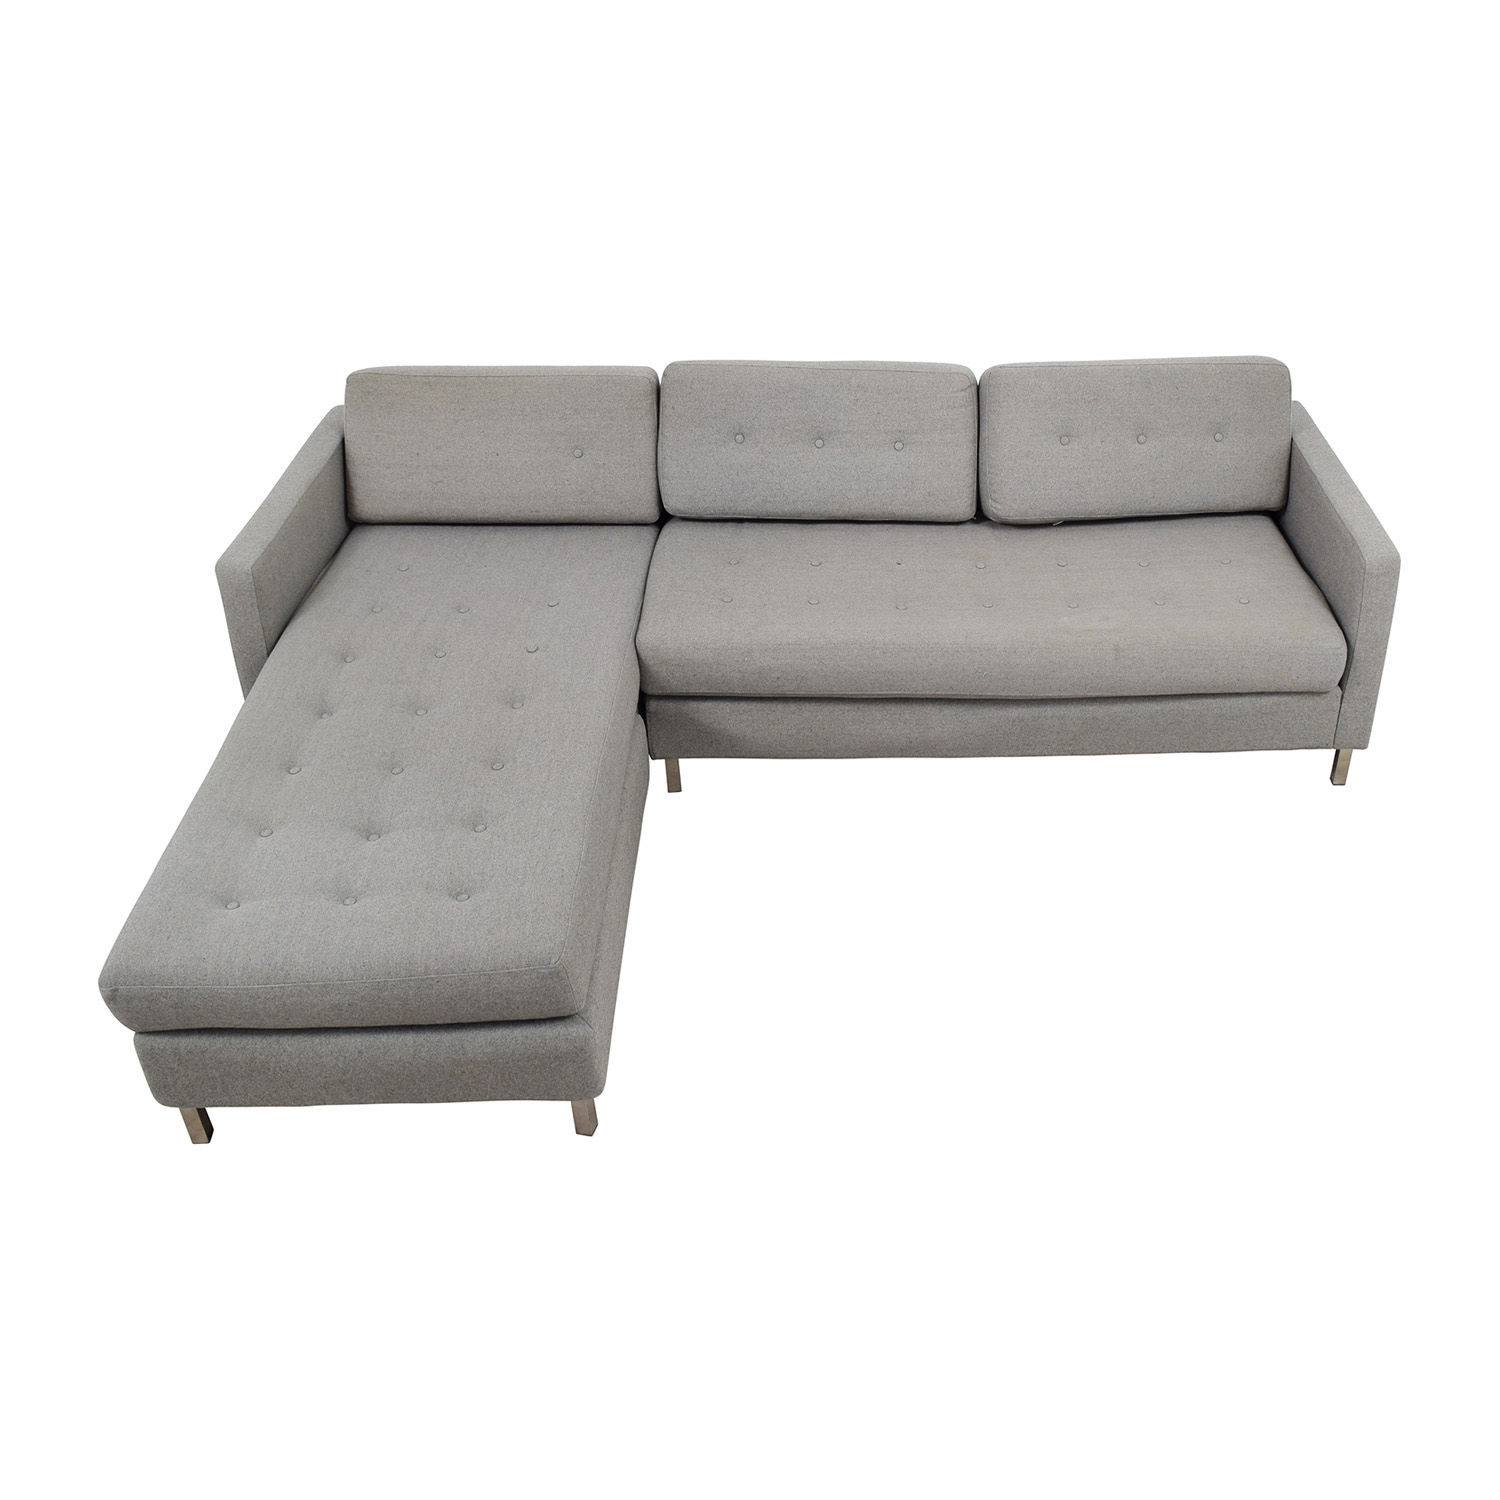 CB2 CB2 Grey Tufted Chaise Sectional coupon